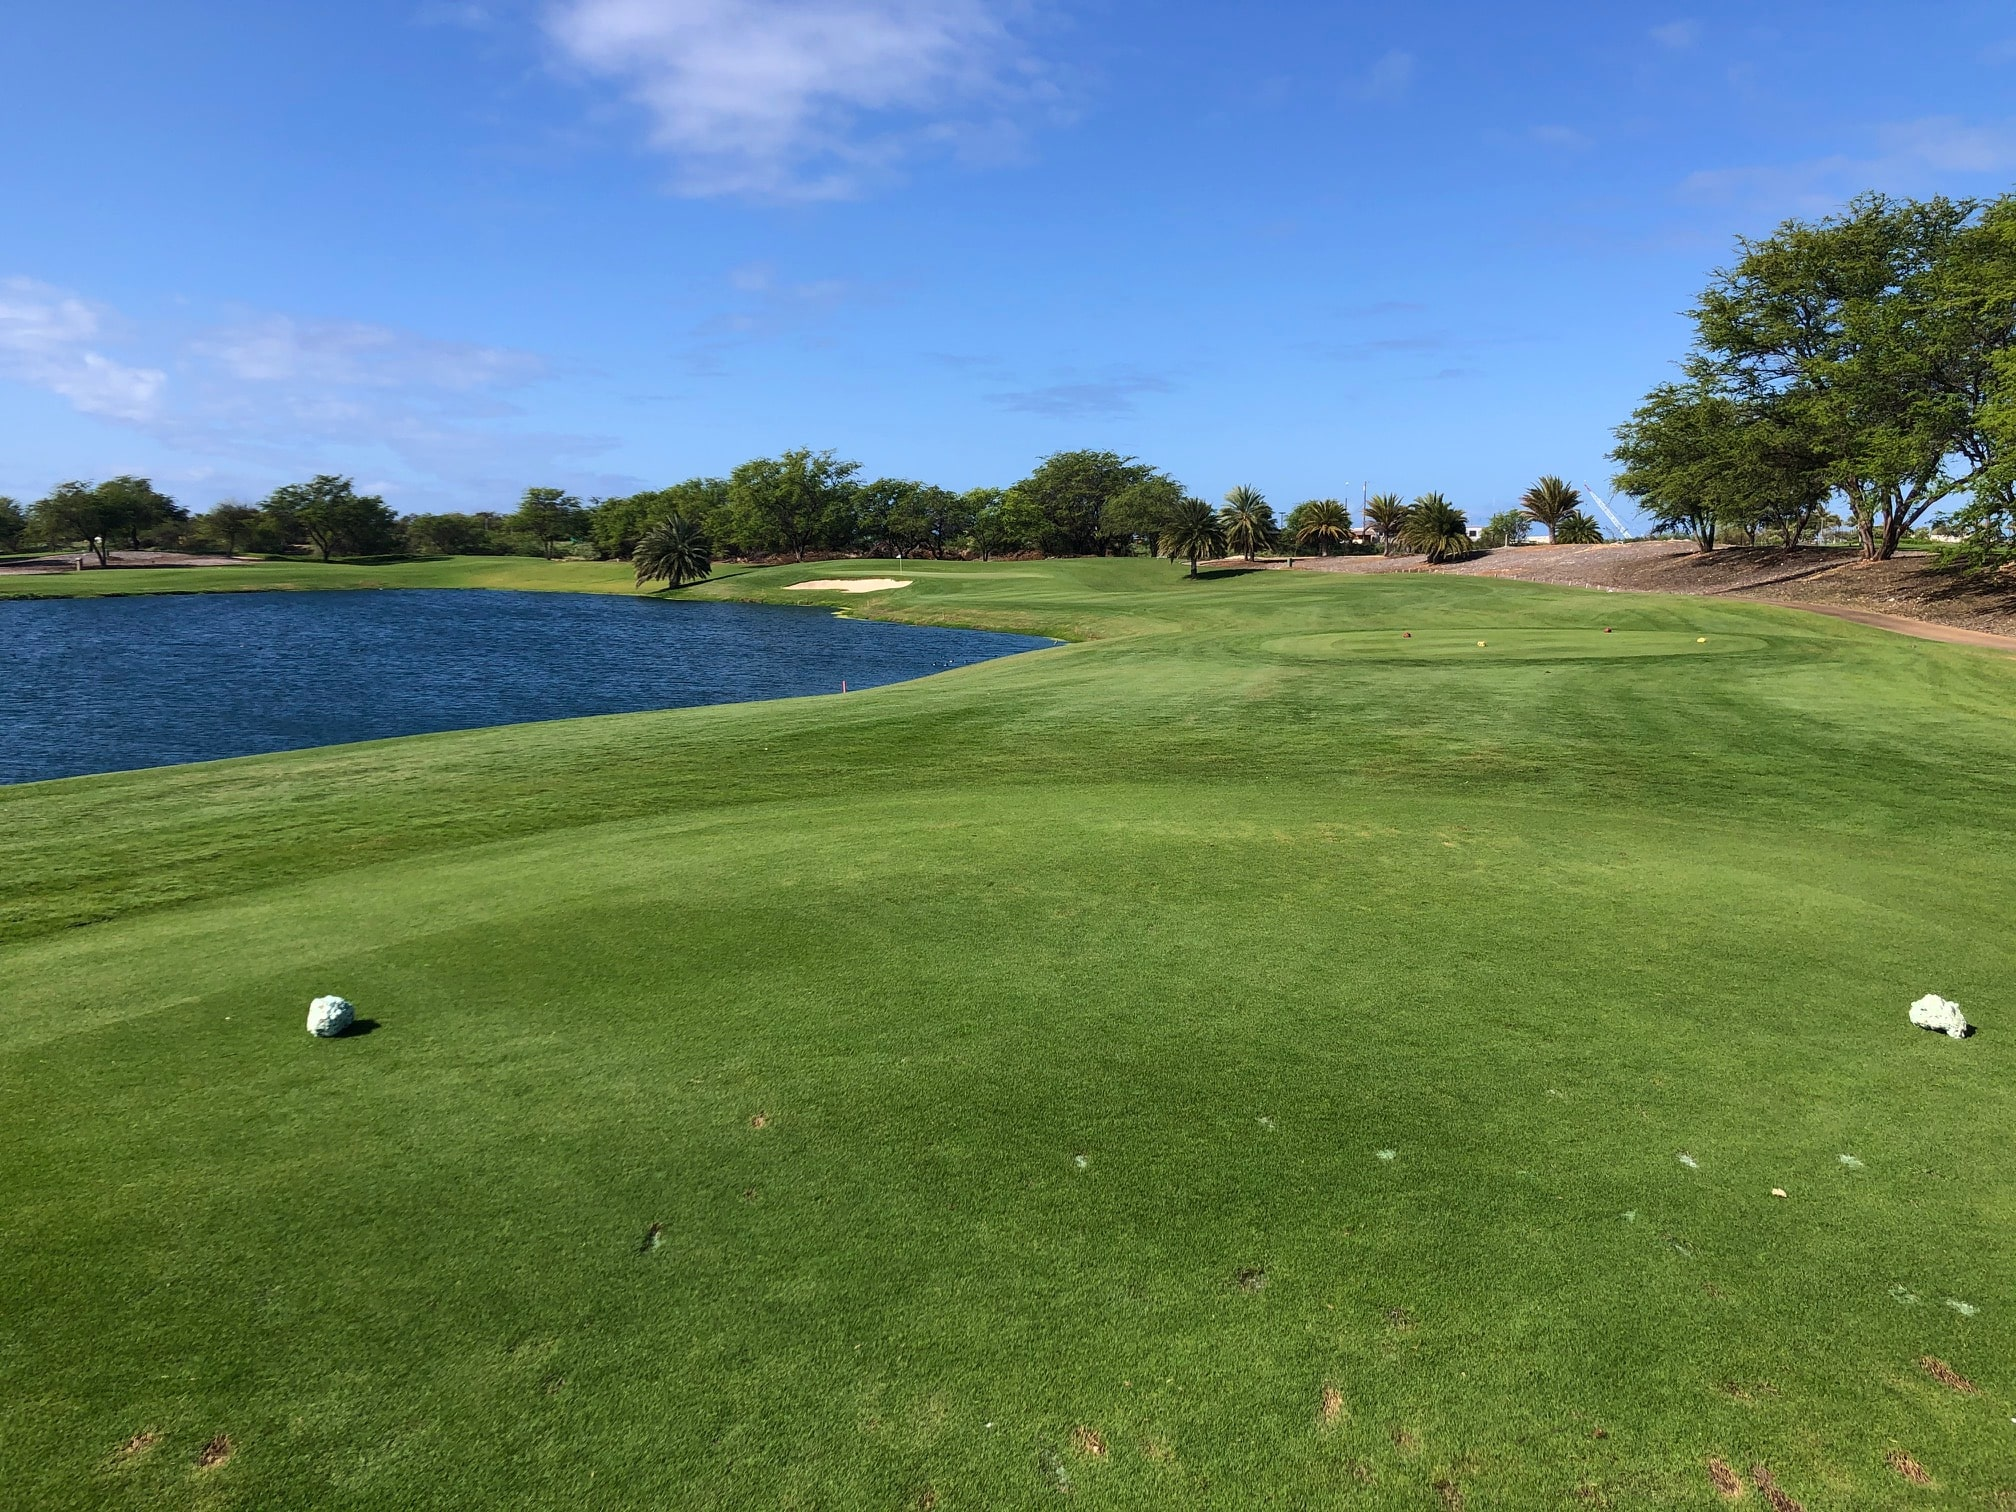 17th hole at Hoakalei Country Club